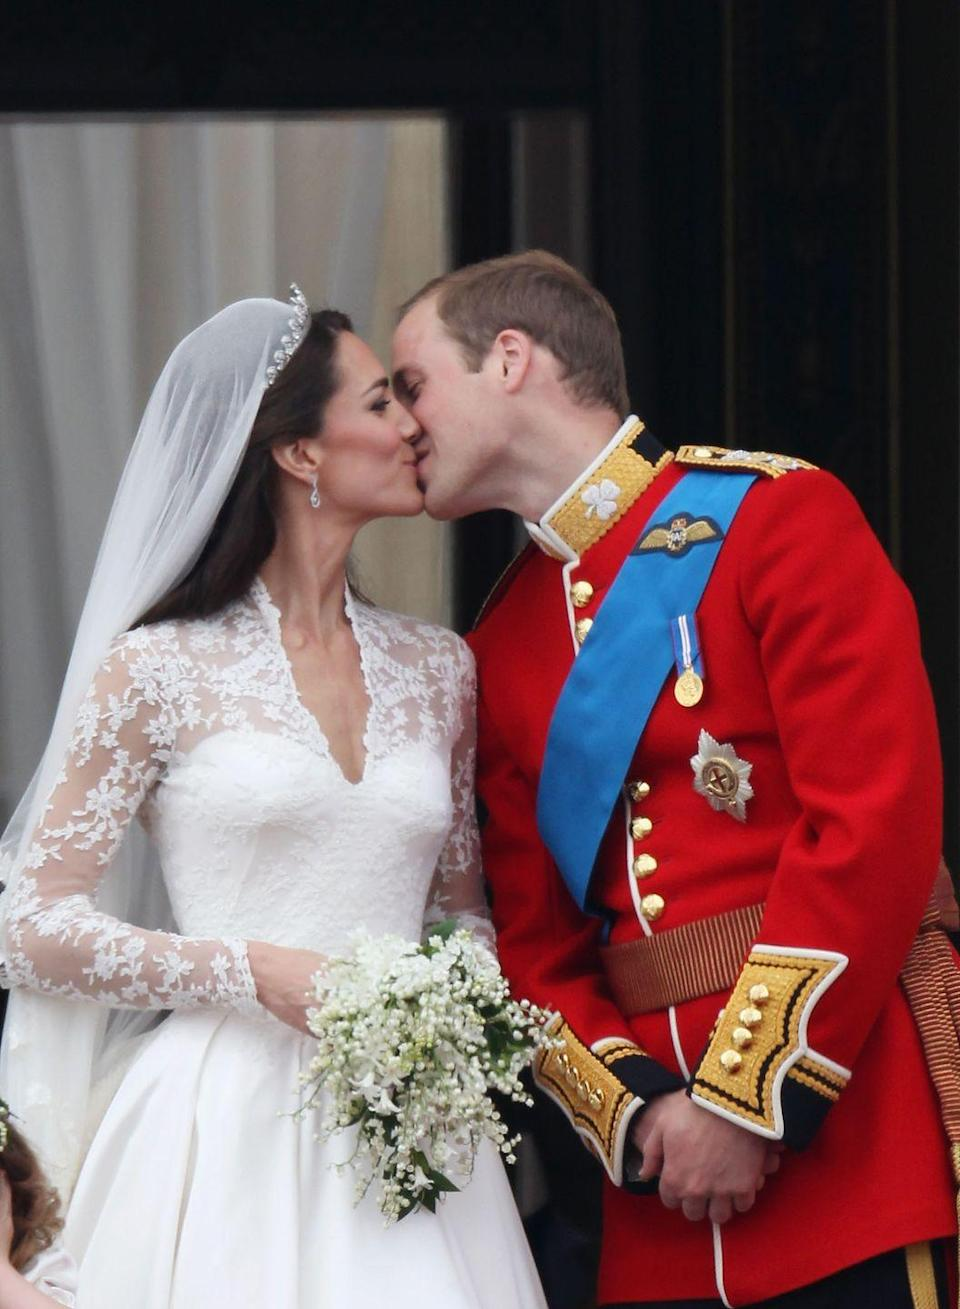 <p>The Duke and Duchess of Cambridge had not one but two kisses on their wedding day. Here they are smooching on the balcony of Buckingham Palace in front of their fans, April 2011.</p>